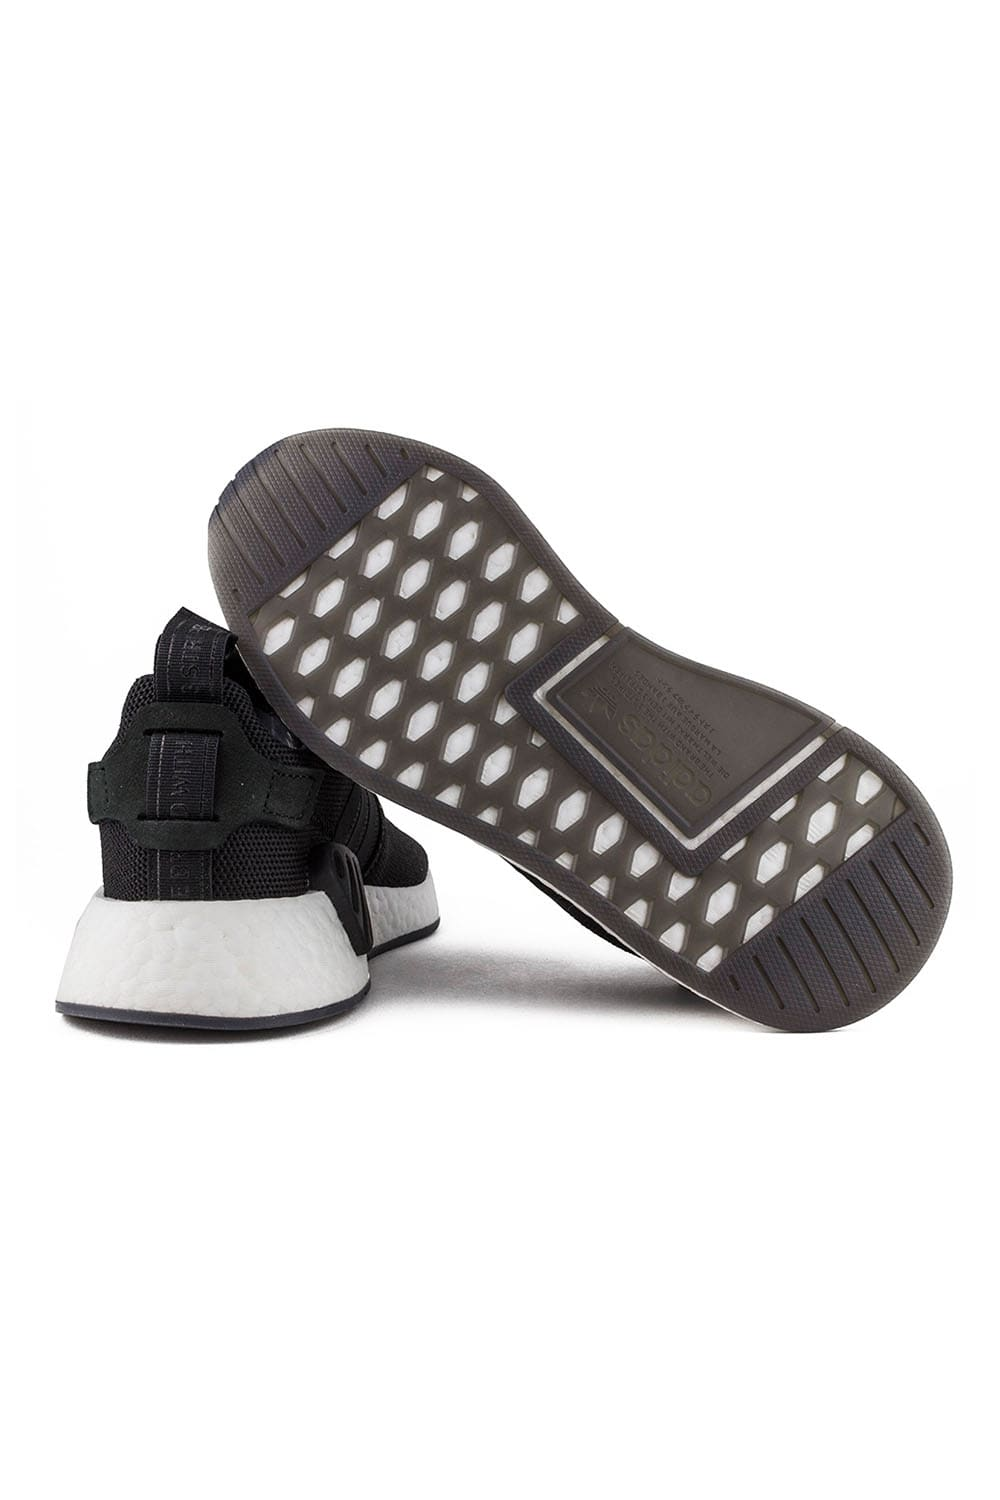 huge selection of 7a76c 41441 Adidas NMD R2 - CQ2402